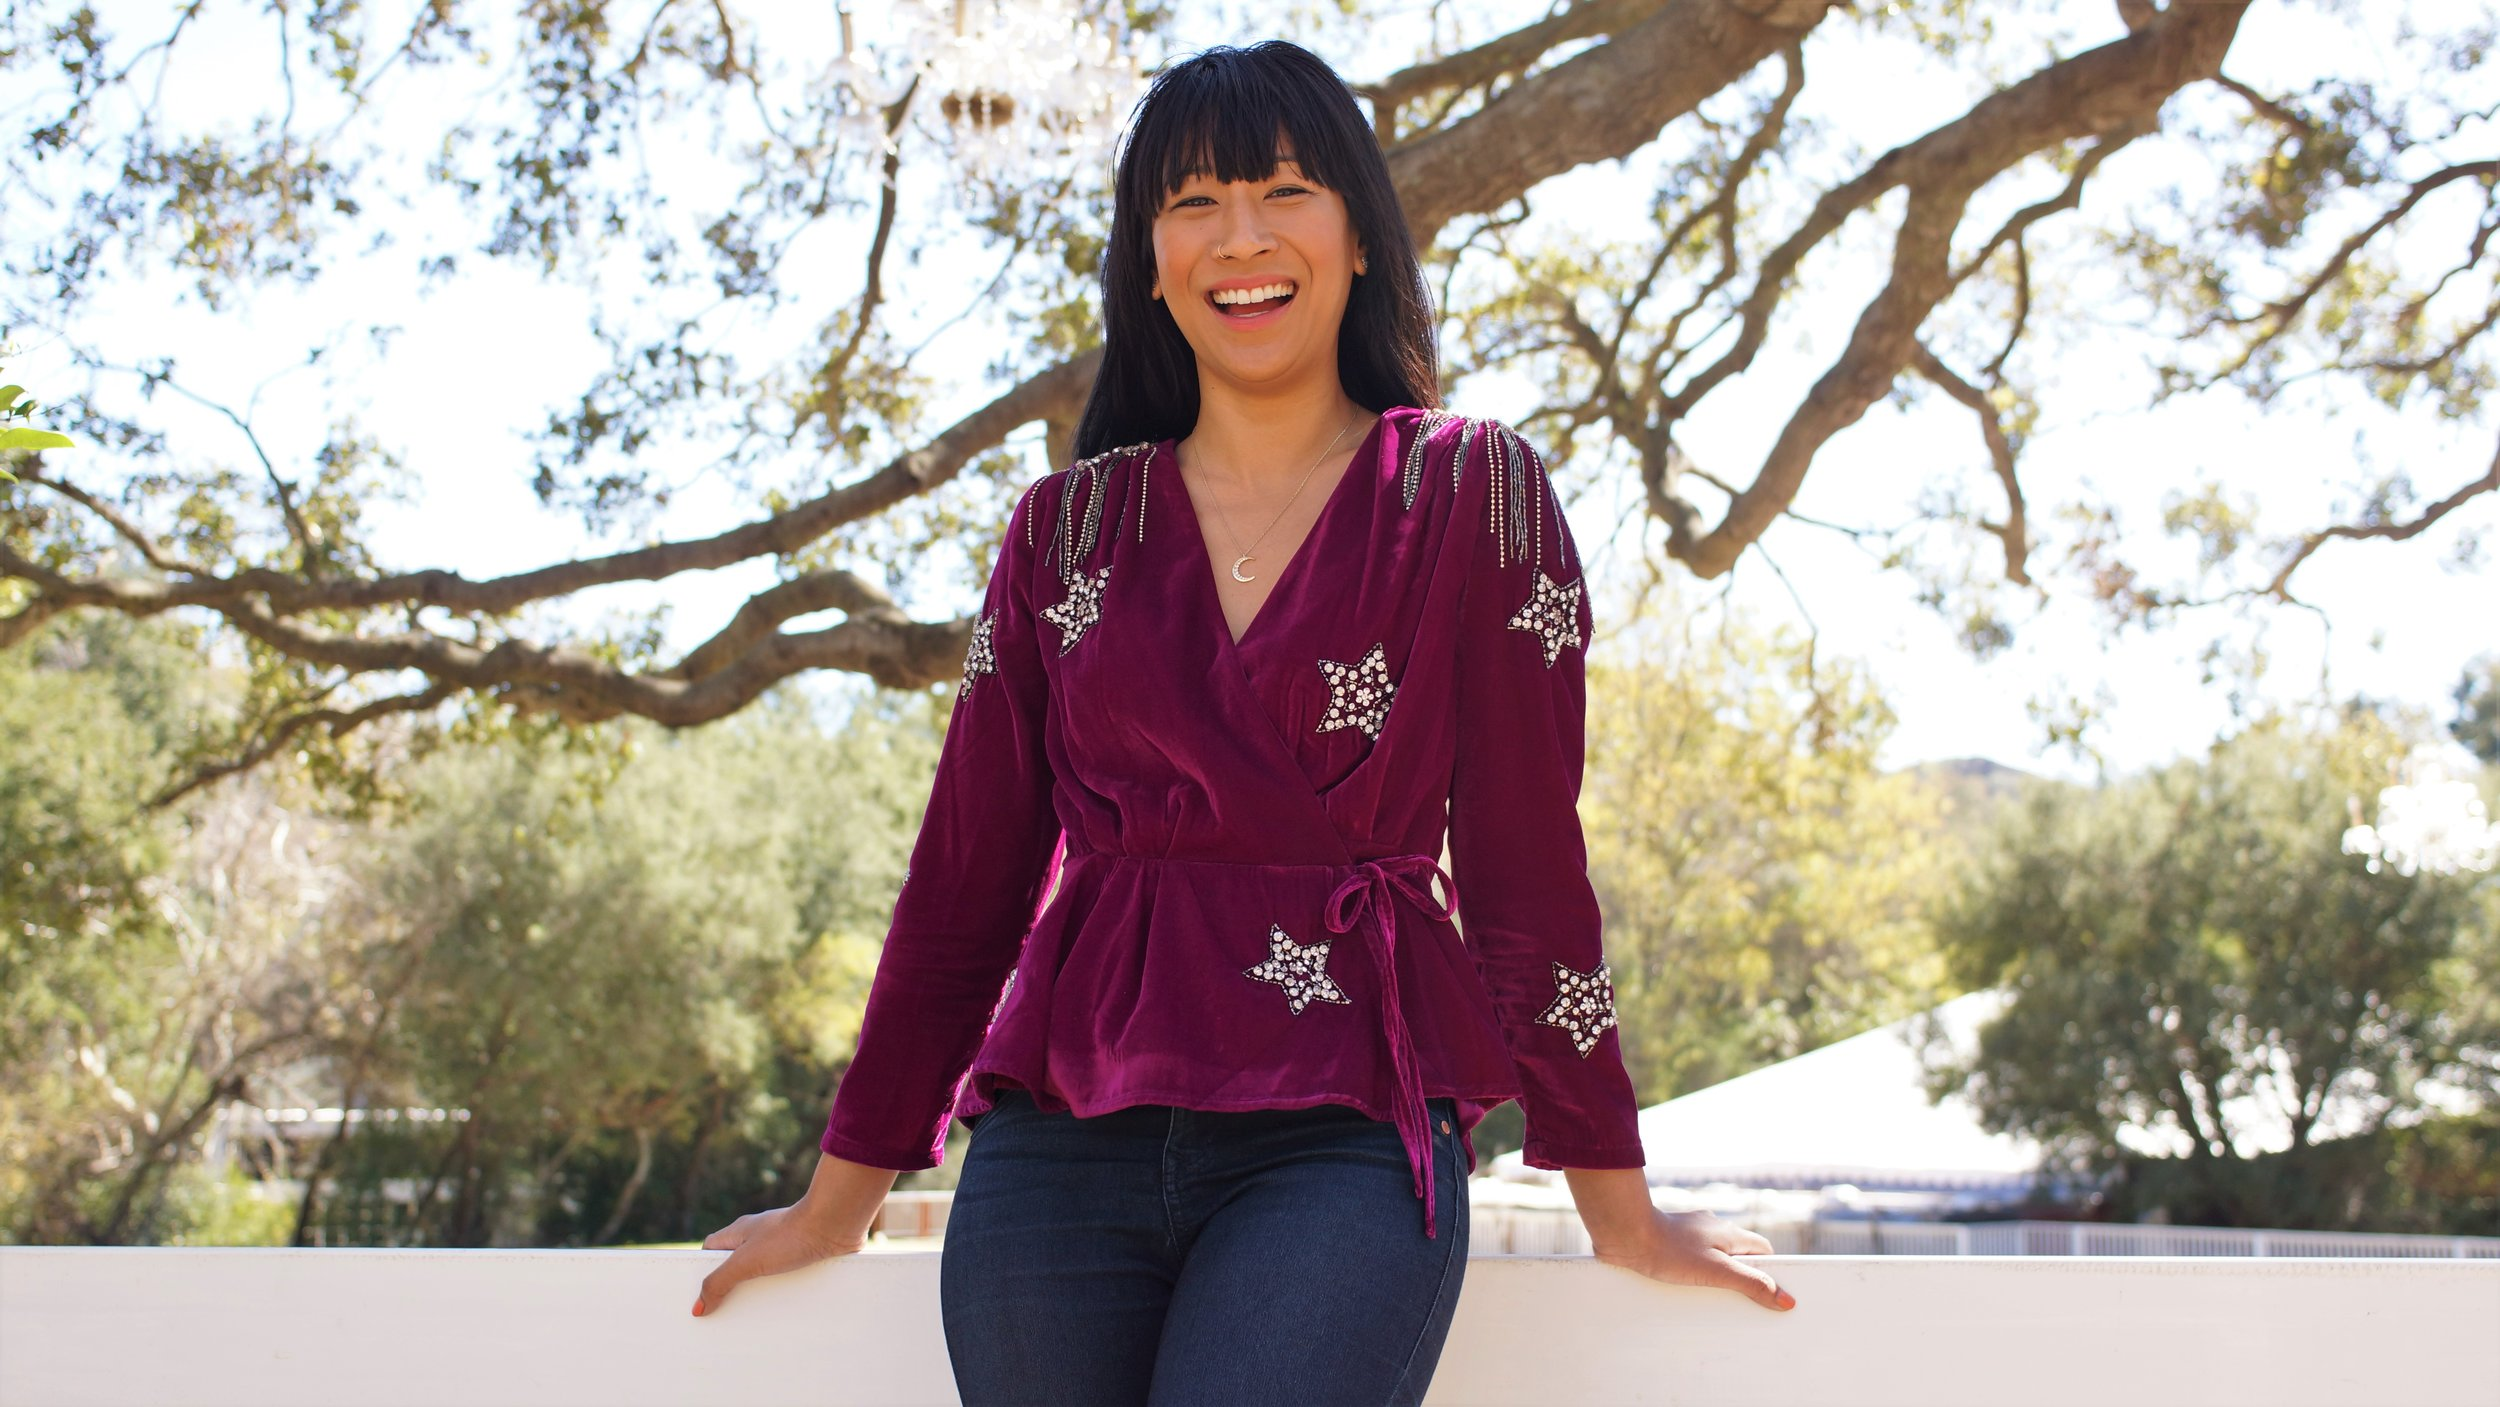 June Suepunpuck  is a spiritual fashion stylist and CEO & co-founder of the lifestyle blog,  Soma & Ulte . She is an advocate of the beauty within. June's mission is to help people see their soul's purpose and embody their gifts from head to toe. Photo by: Constance Ward